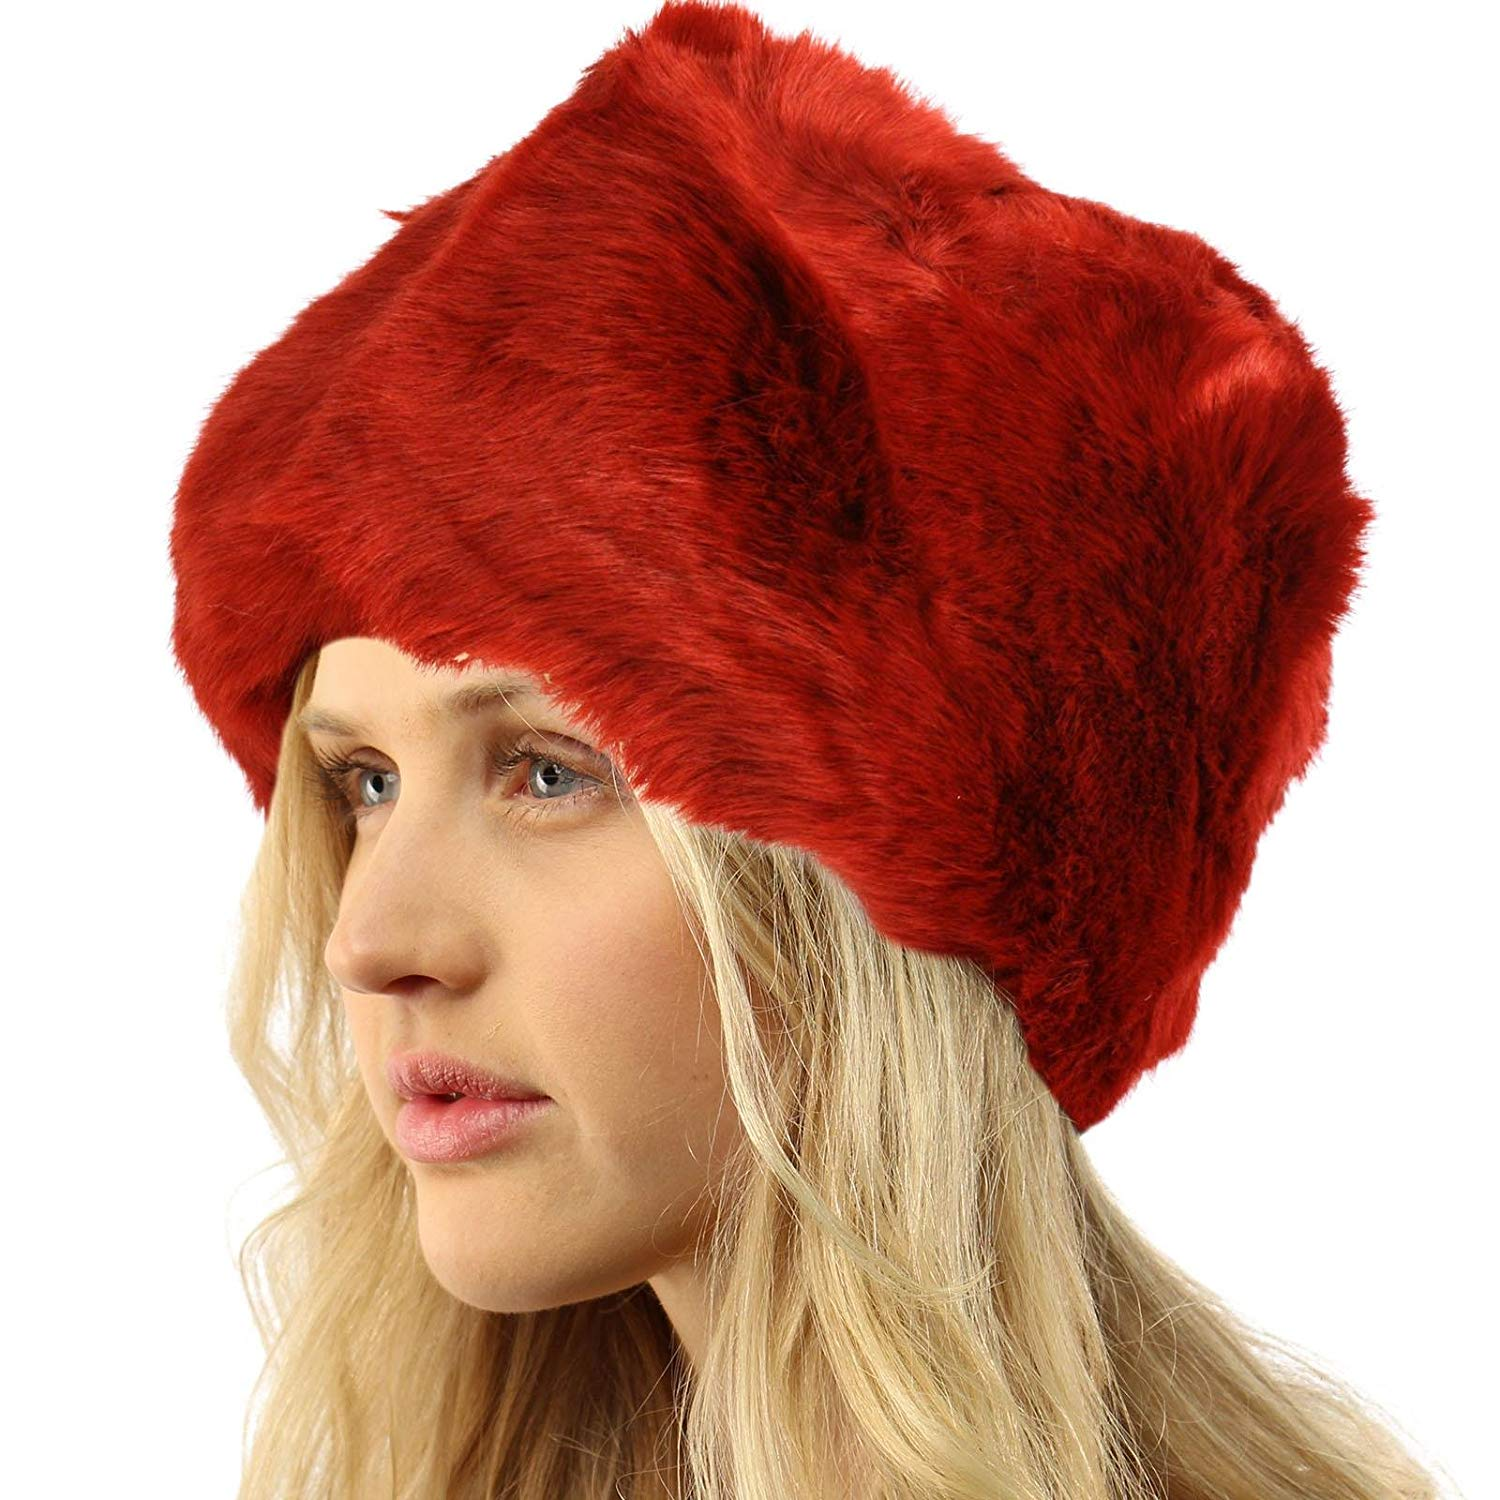 SK Hat shop Ladies Winter Soft Faux Fur Packable Russian Bucket Cloche Snow Ski Cap Hat